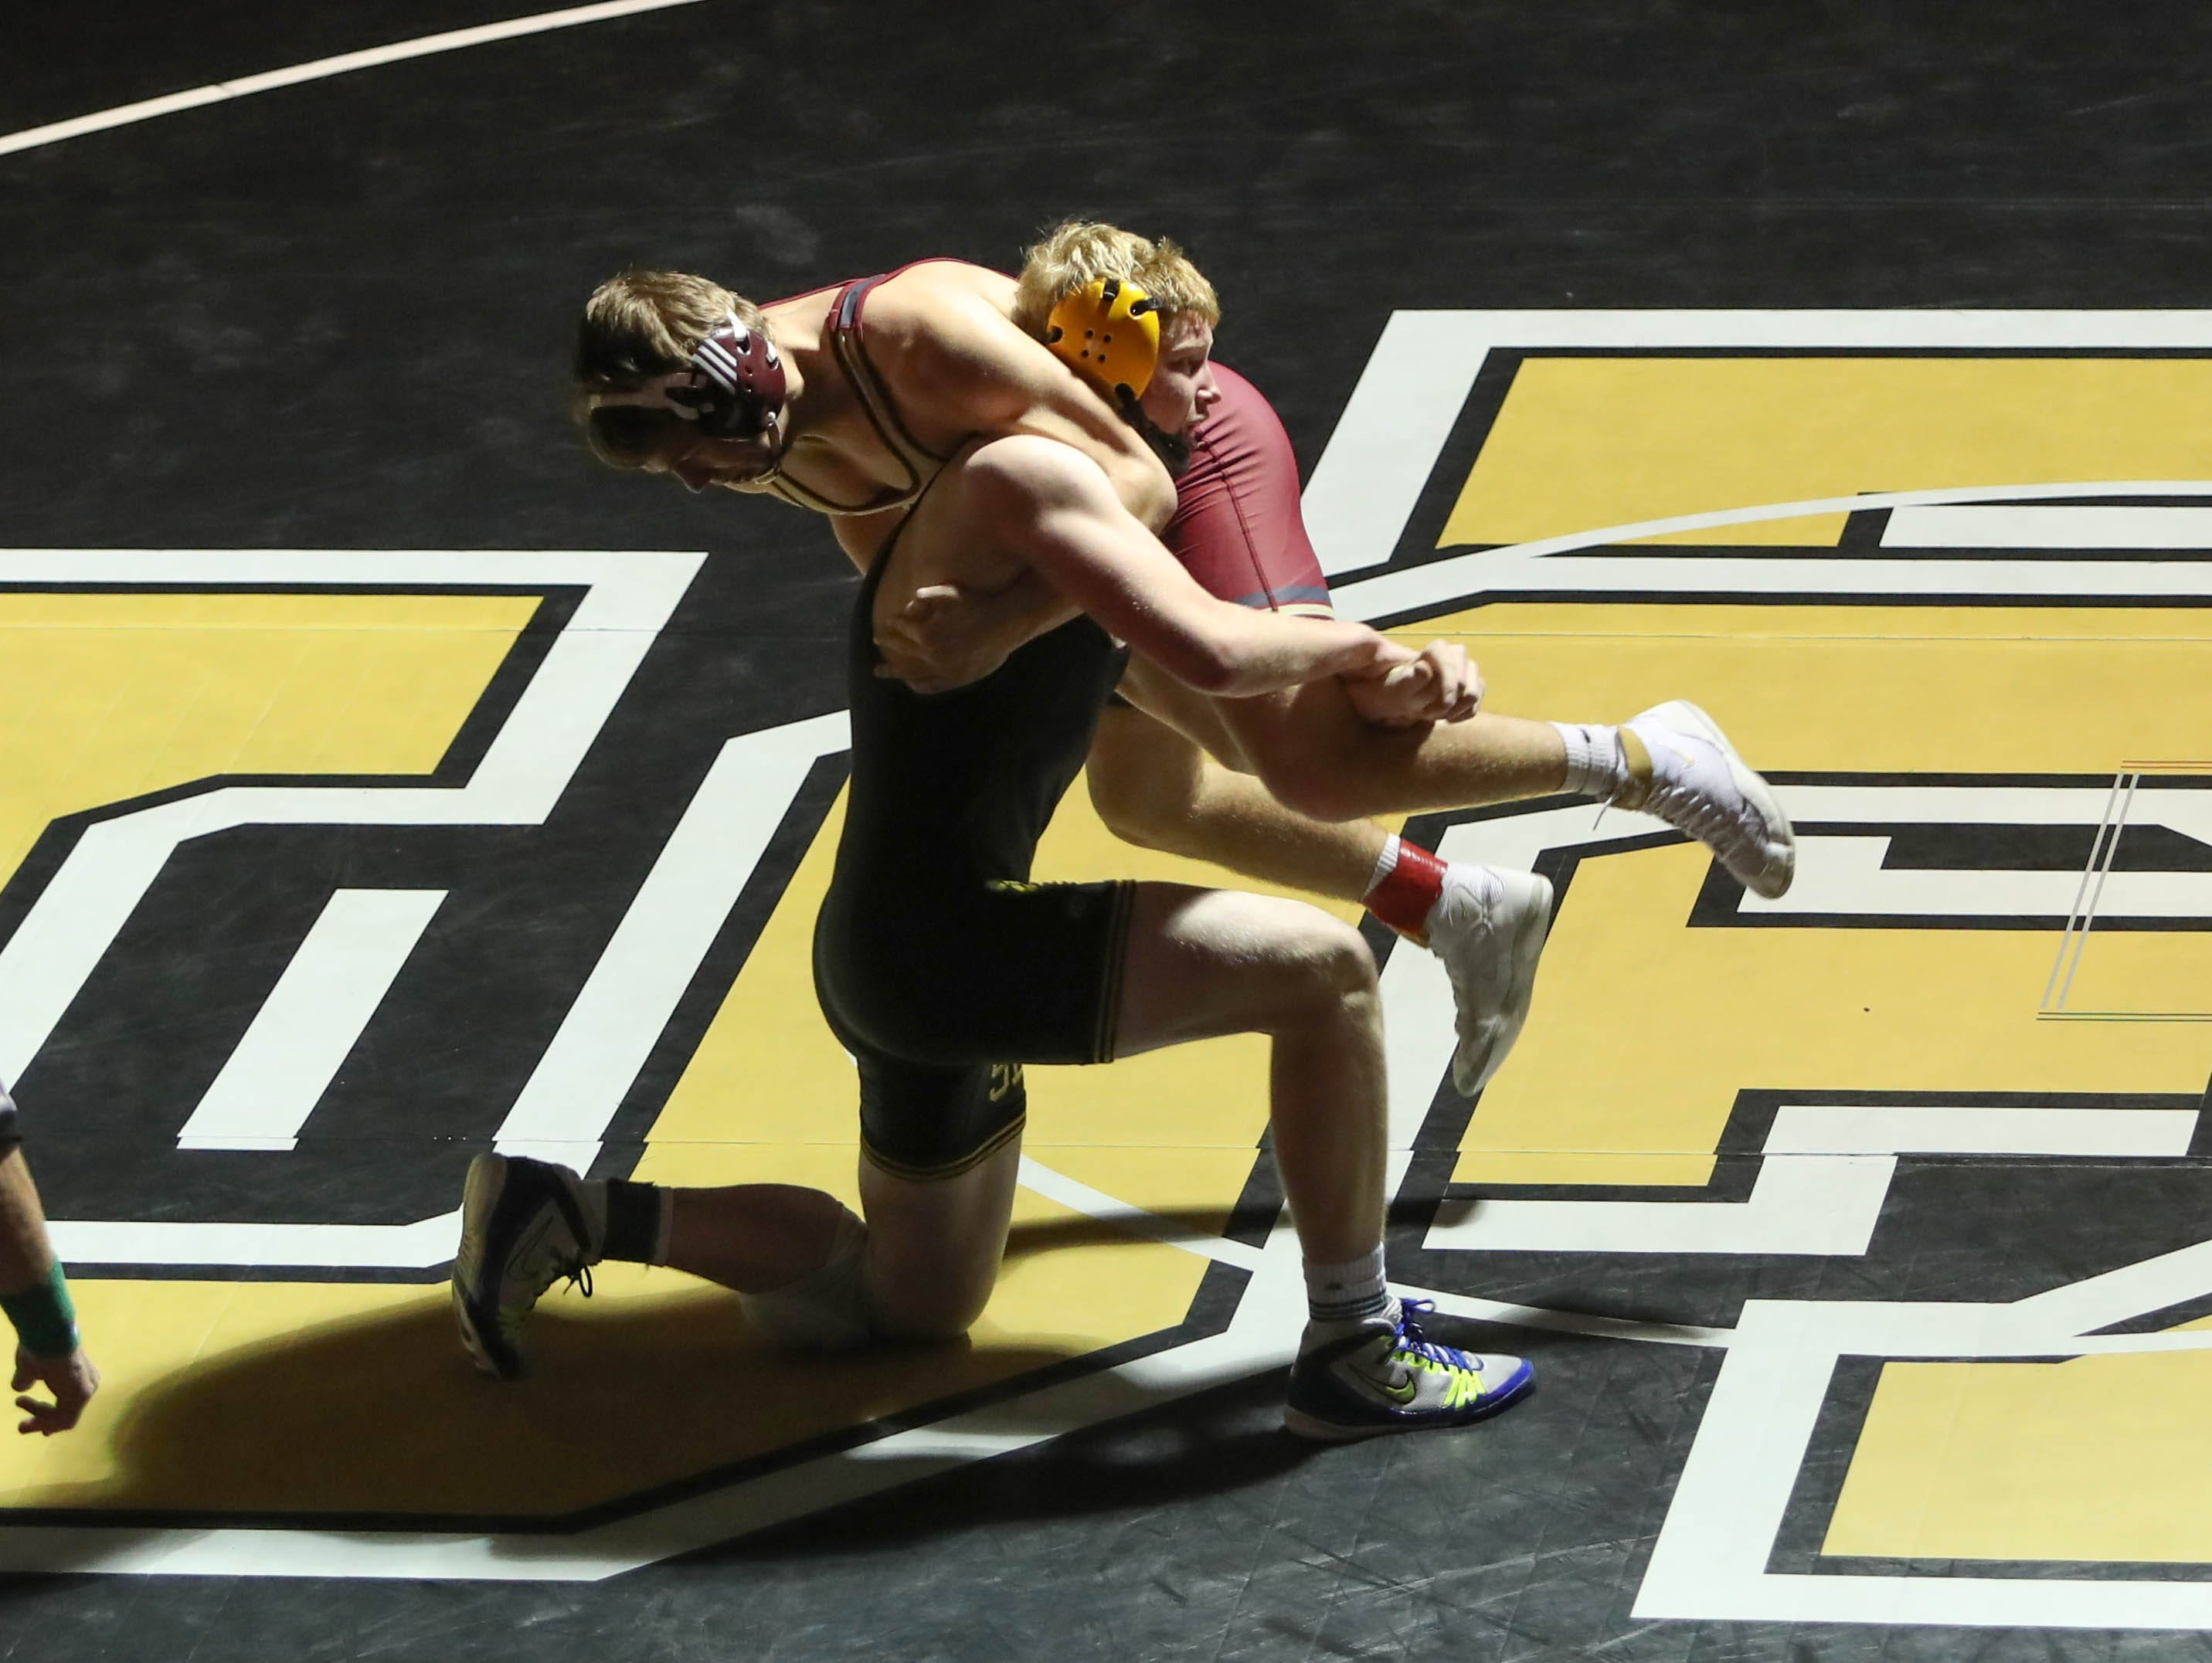 Jake Tofanelli, of Des Moines Lincoln, wrestles with Southeast Polk's Zach Strickland. The Rams won 61-12 against Lincoln in the Jan. 31, 2019 match at Southeast Polk High.